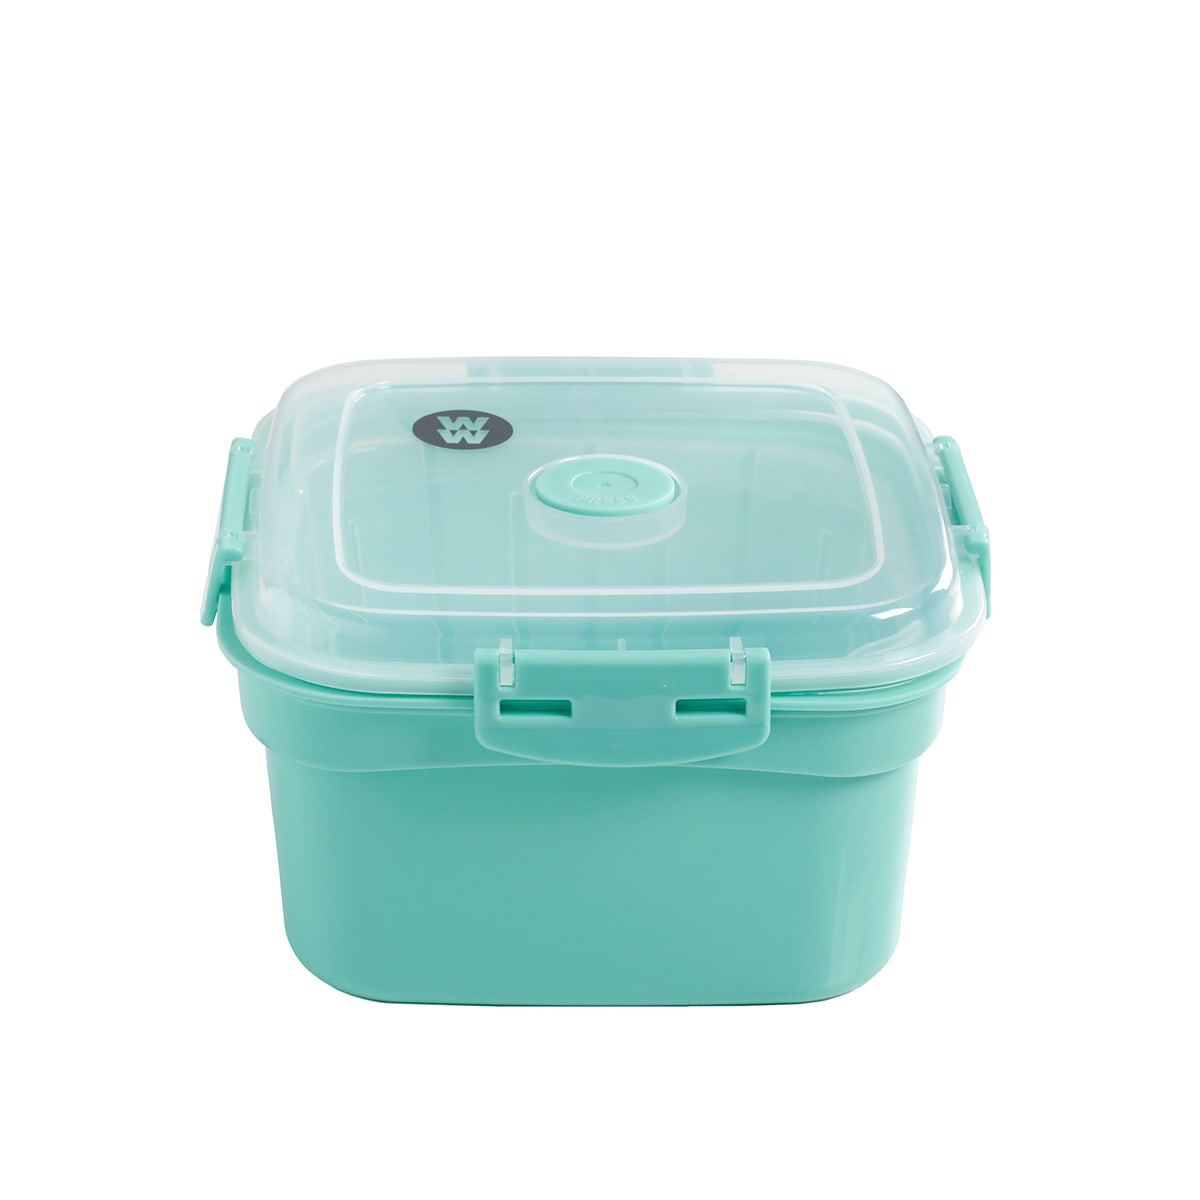 Microwave BPA-free plastic green Steamer To-Go, 68 ounces capacity, dishwasher safe, with vented lid and side locks.